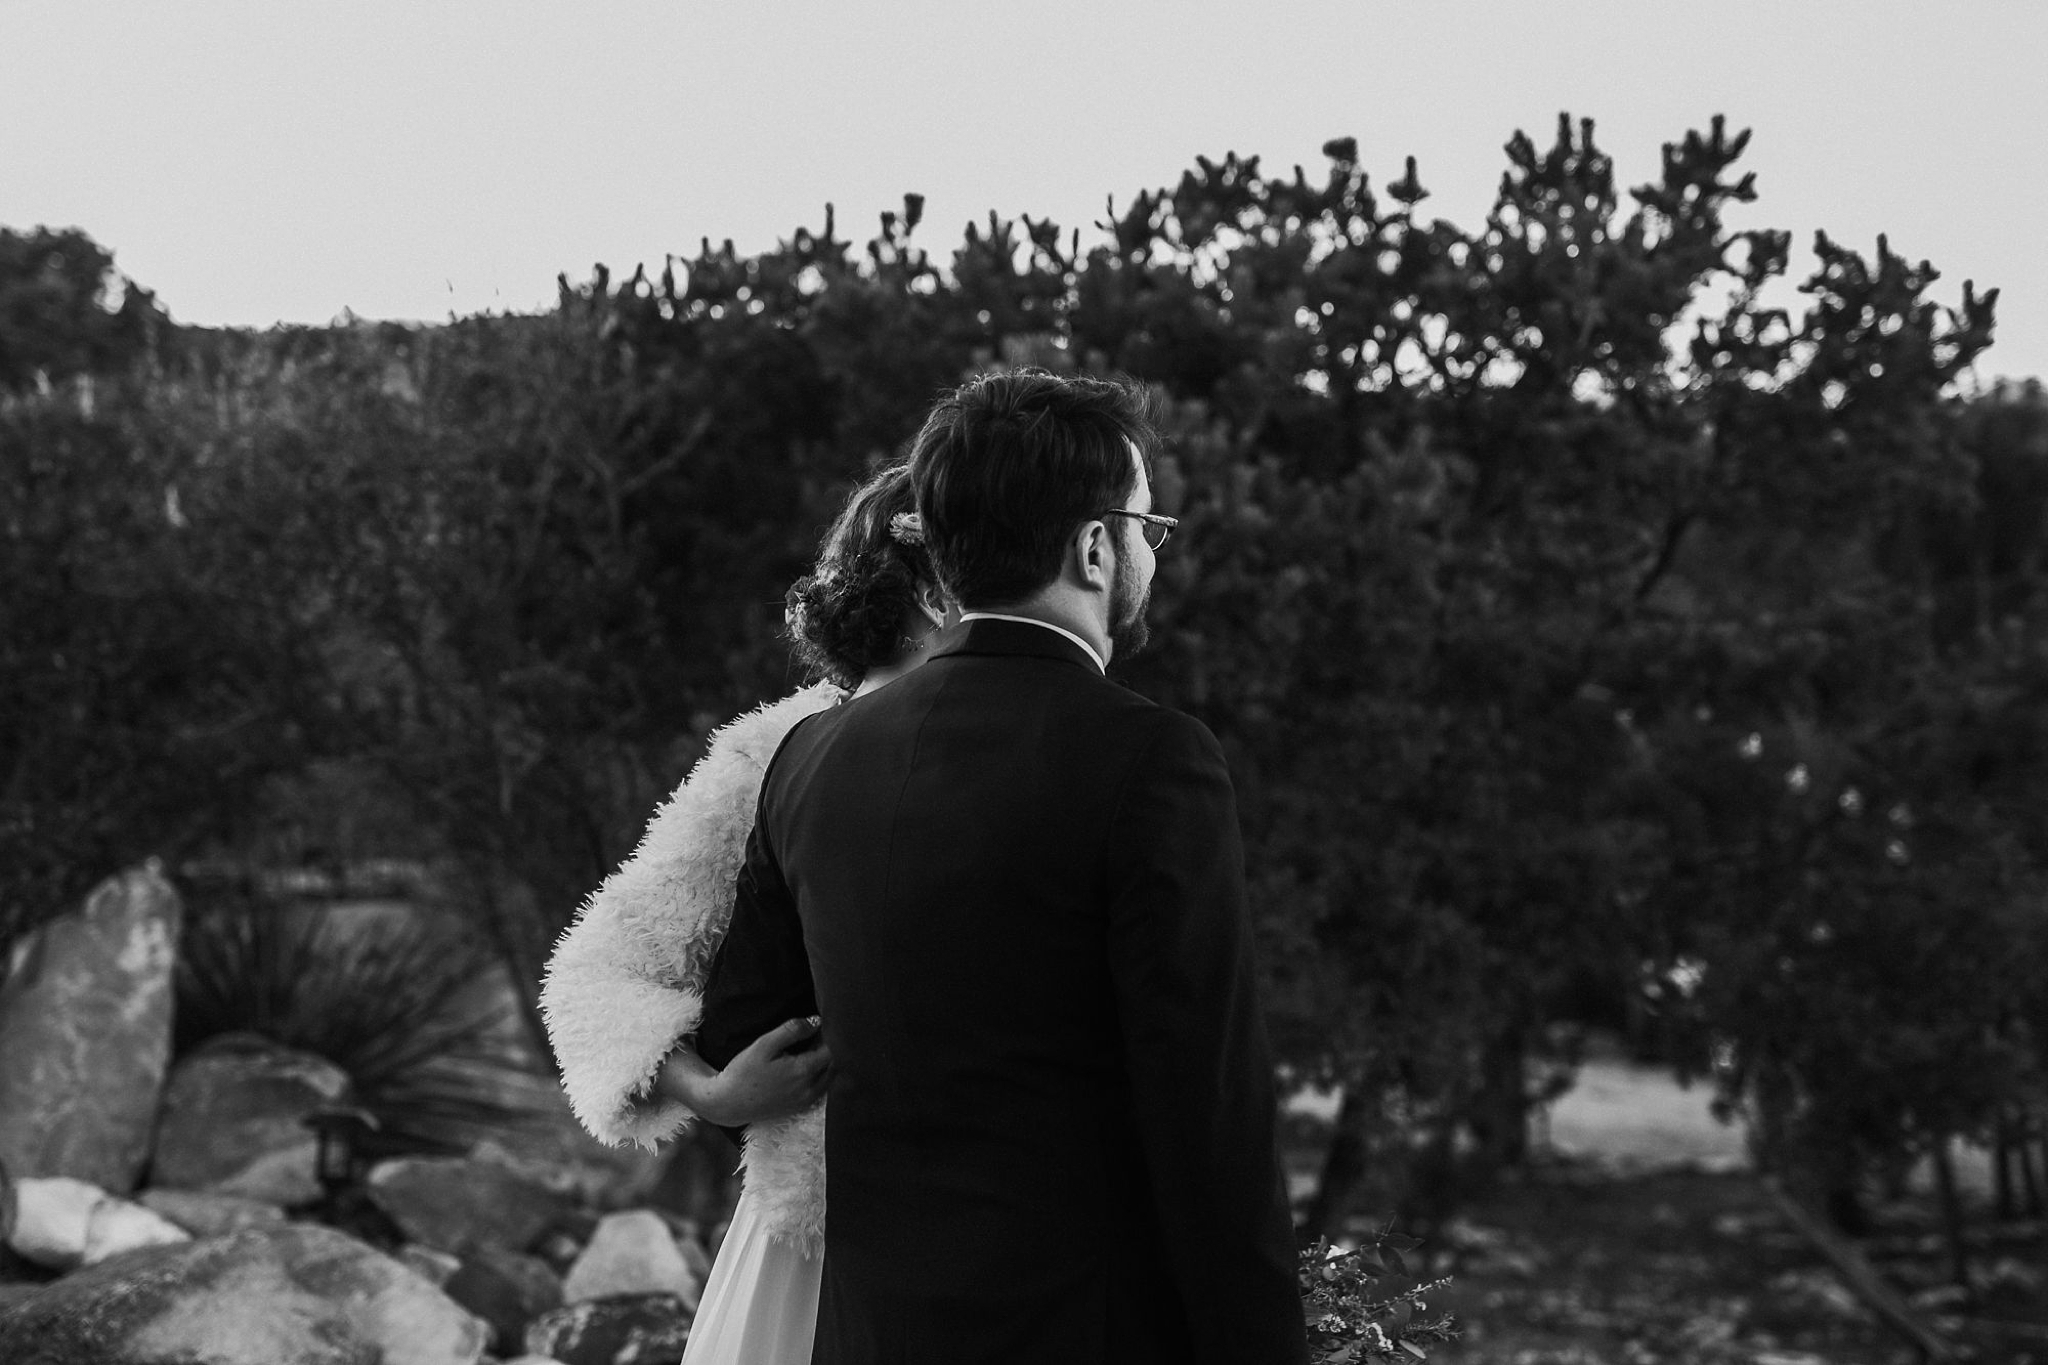 Alicia+lucia+photography+-+albuquerque+wedding+photographer+-+santa+fe+wedding+photography+-+new+mexico+wedding+photographer+-+new+mexico+wedding+-+engagement+-+santa+fe+wedding+-+hacienda+dona+andrea+-+hacienda+dona+andrea+wedding_0072.jpg